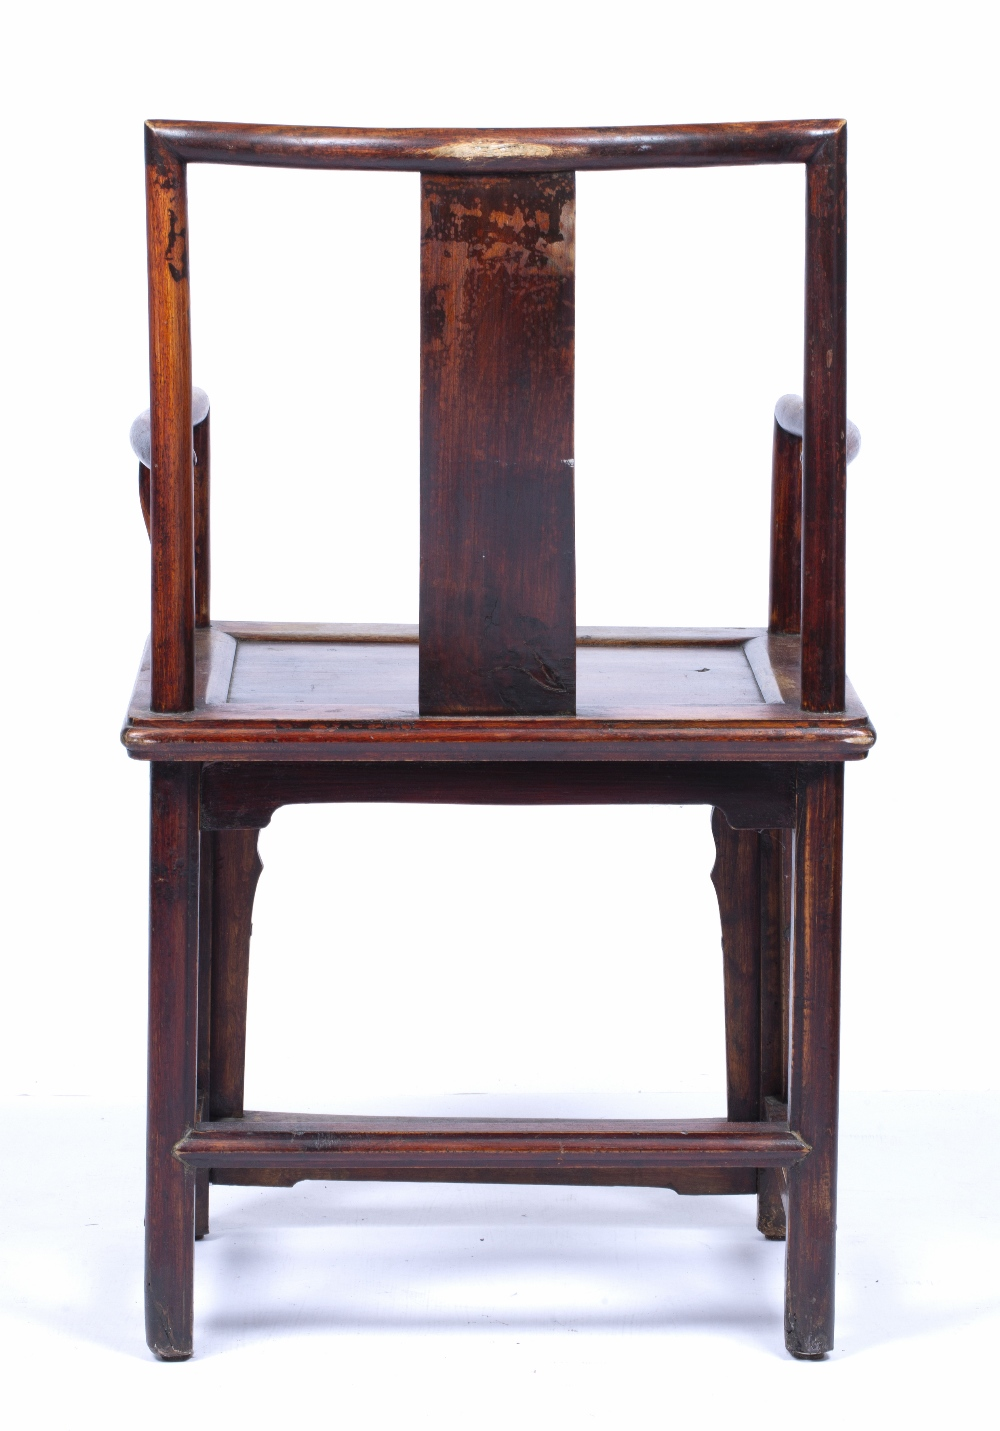 Ming style throne chair Chinese, 19th Century with roundel carved to the back, 95.5cm high, 57cm - Image 4 of 5